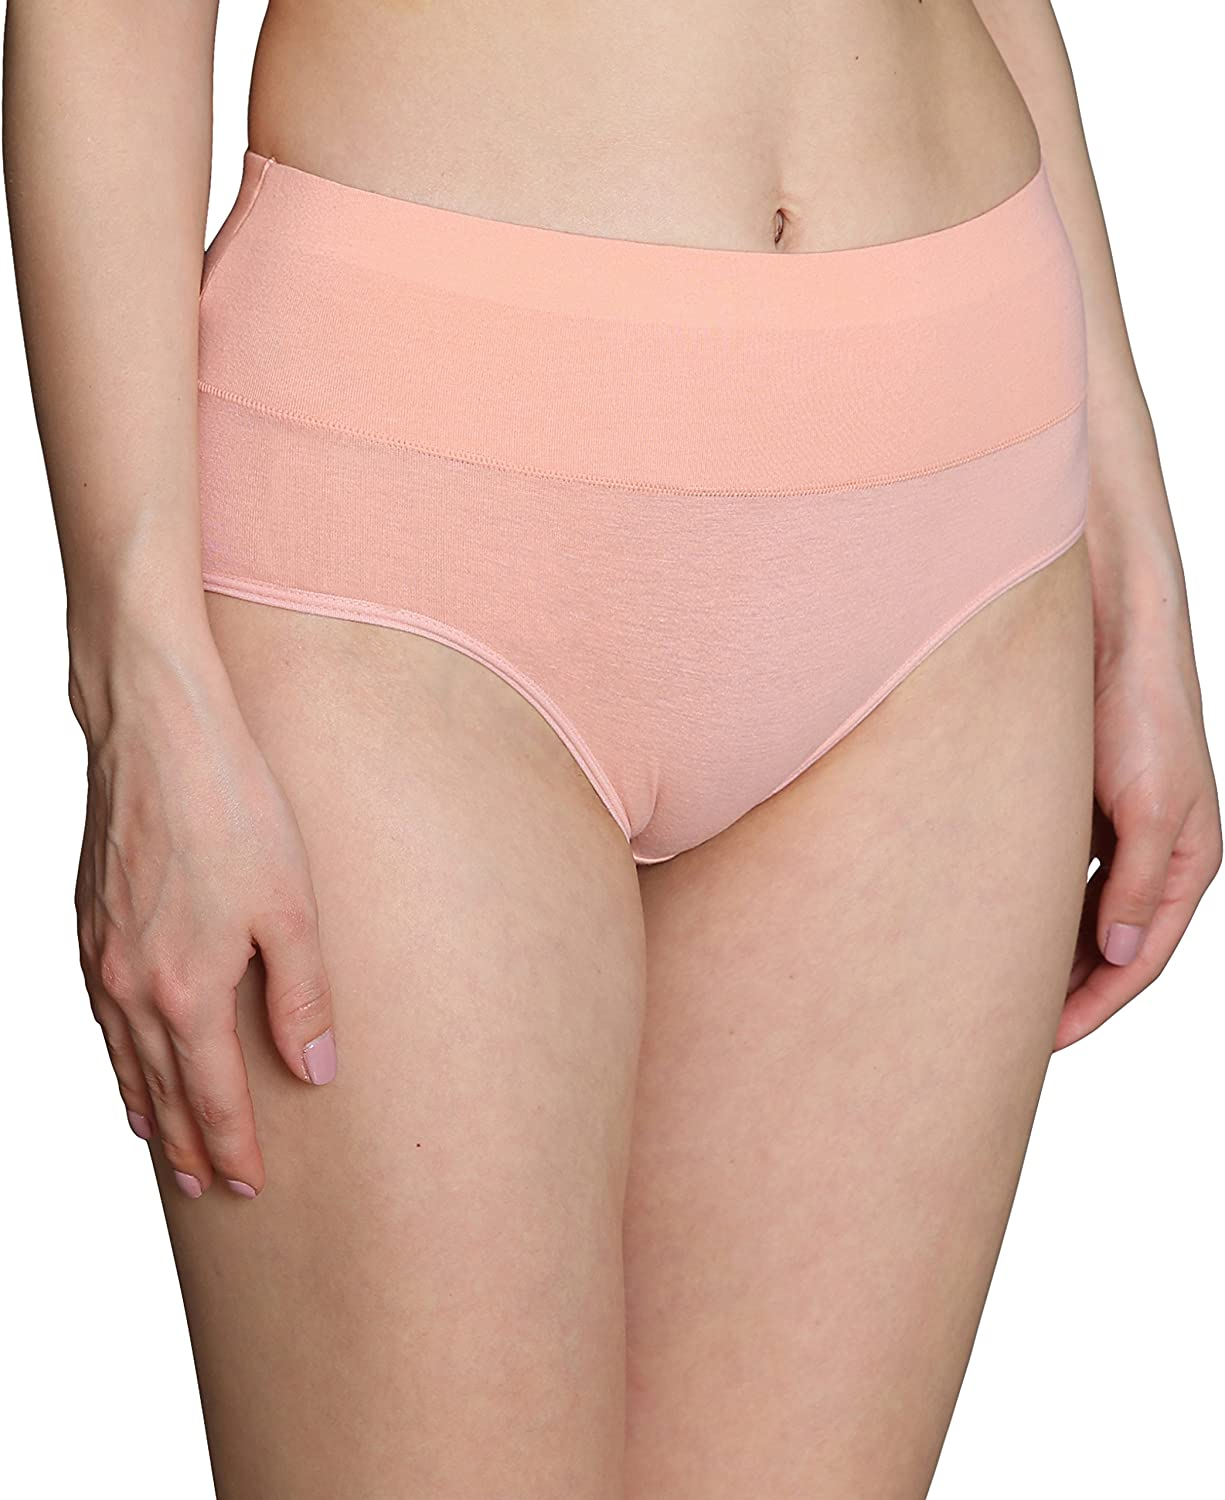 INNERSY Womens Multipack Cotton Soft Underwear Full Coverage Briefs Postpartum High Waisted Slimming Panties